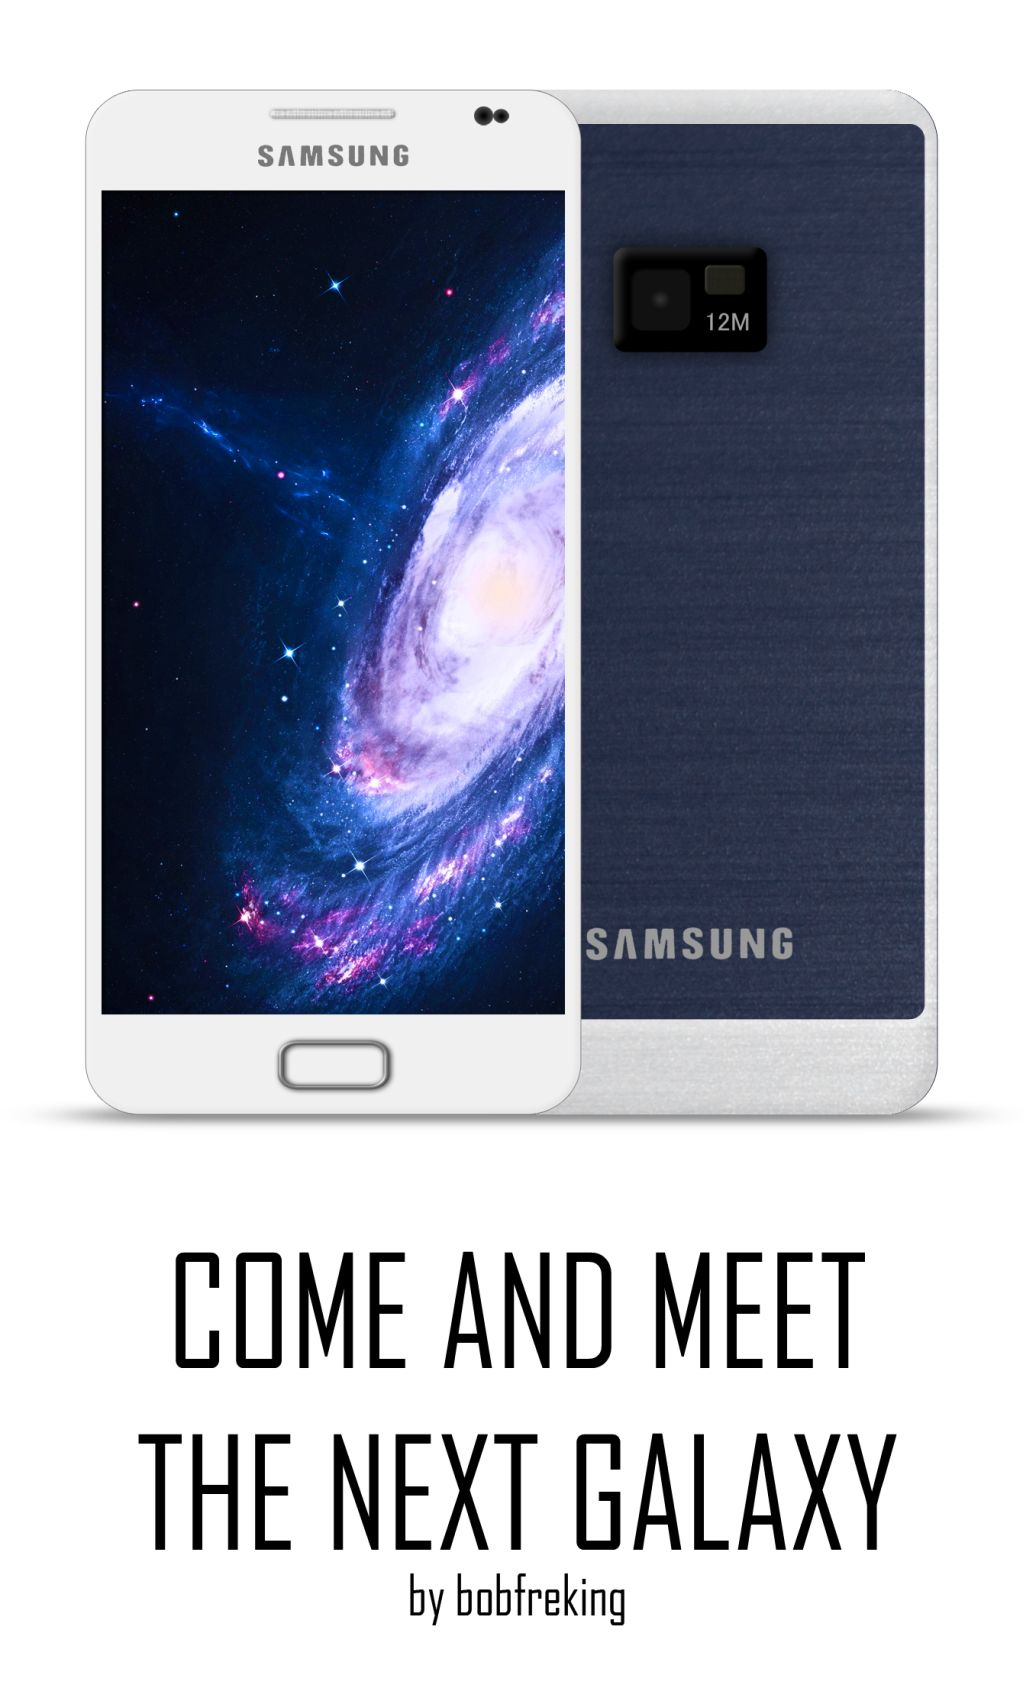 Samsung Galaxy S III Render by Bob Freking, Possibly the Very Last One